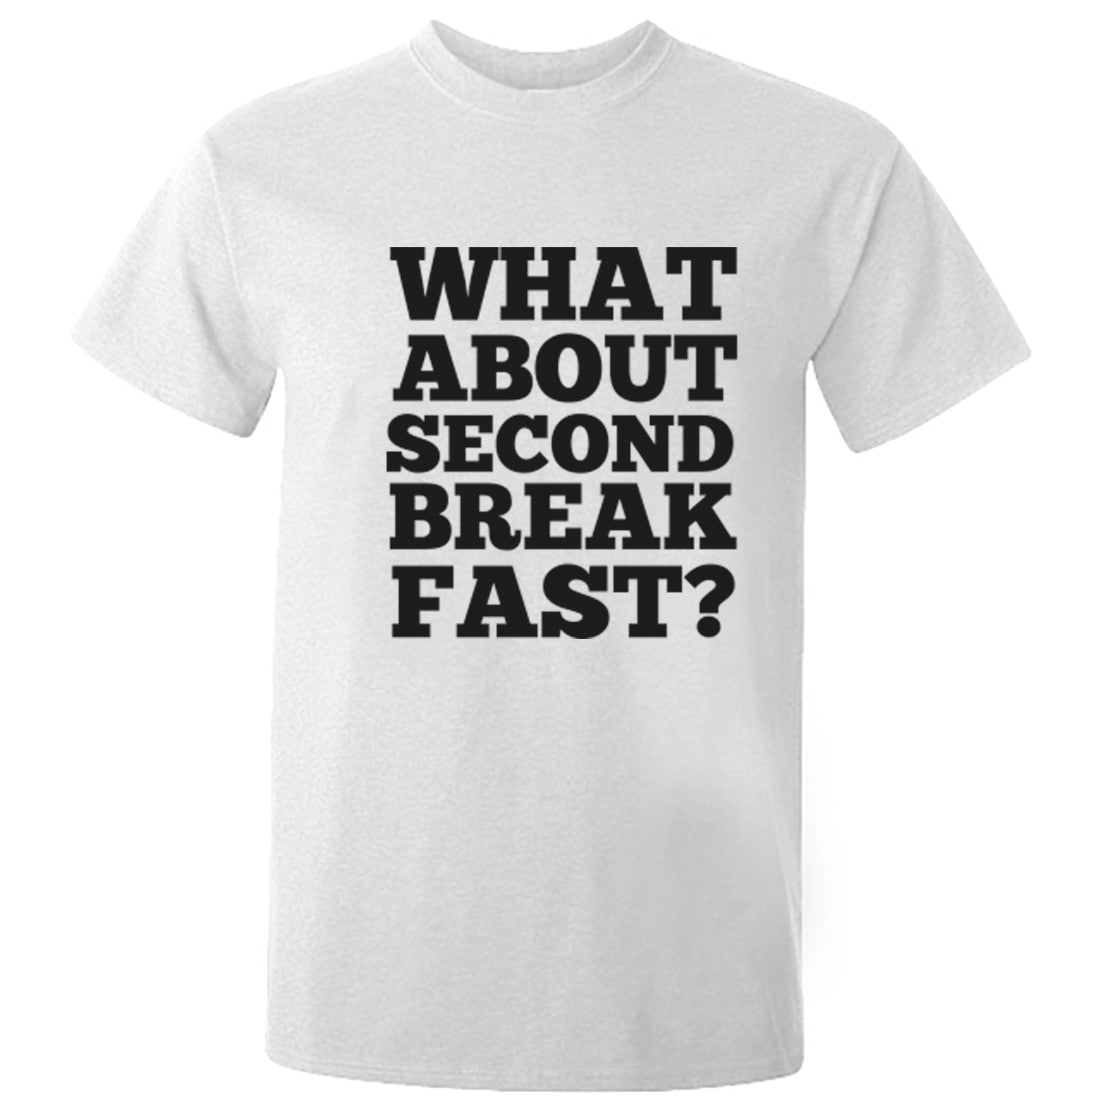 What About Second Breakfast? Unisex Fit T-Shirt K0693 - Illustrated Identity Ltd.